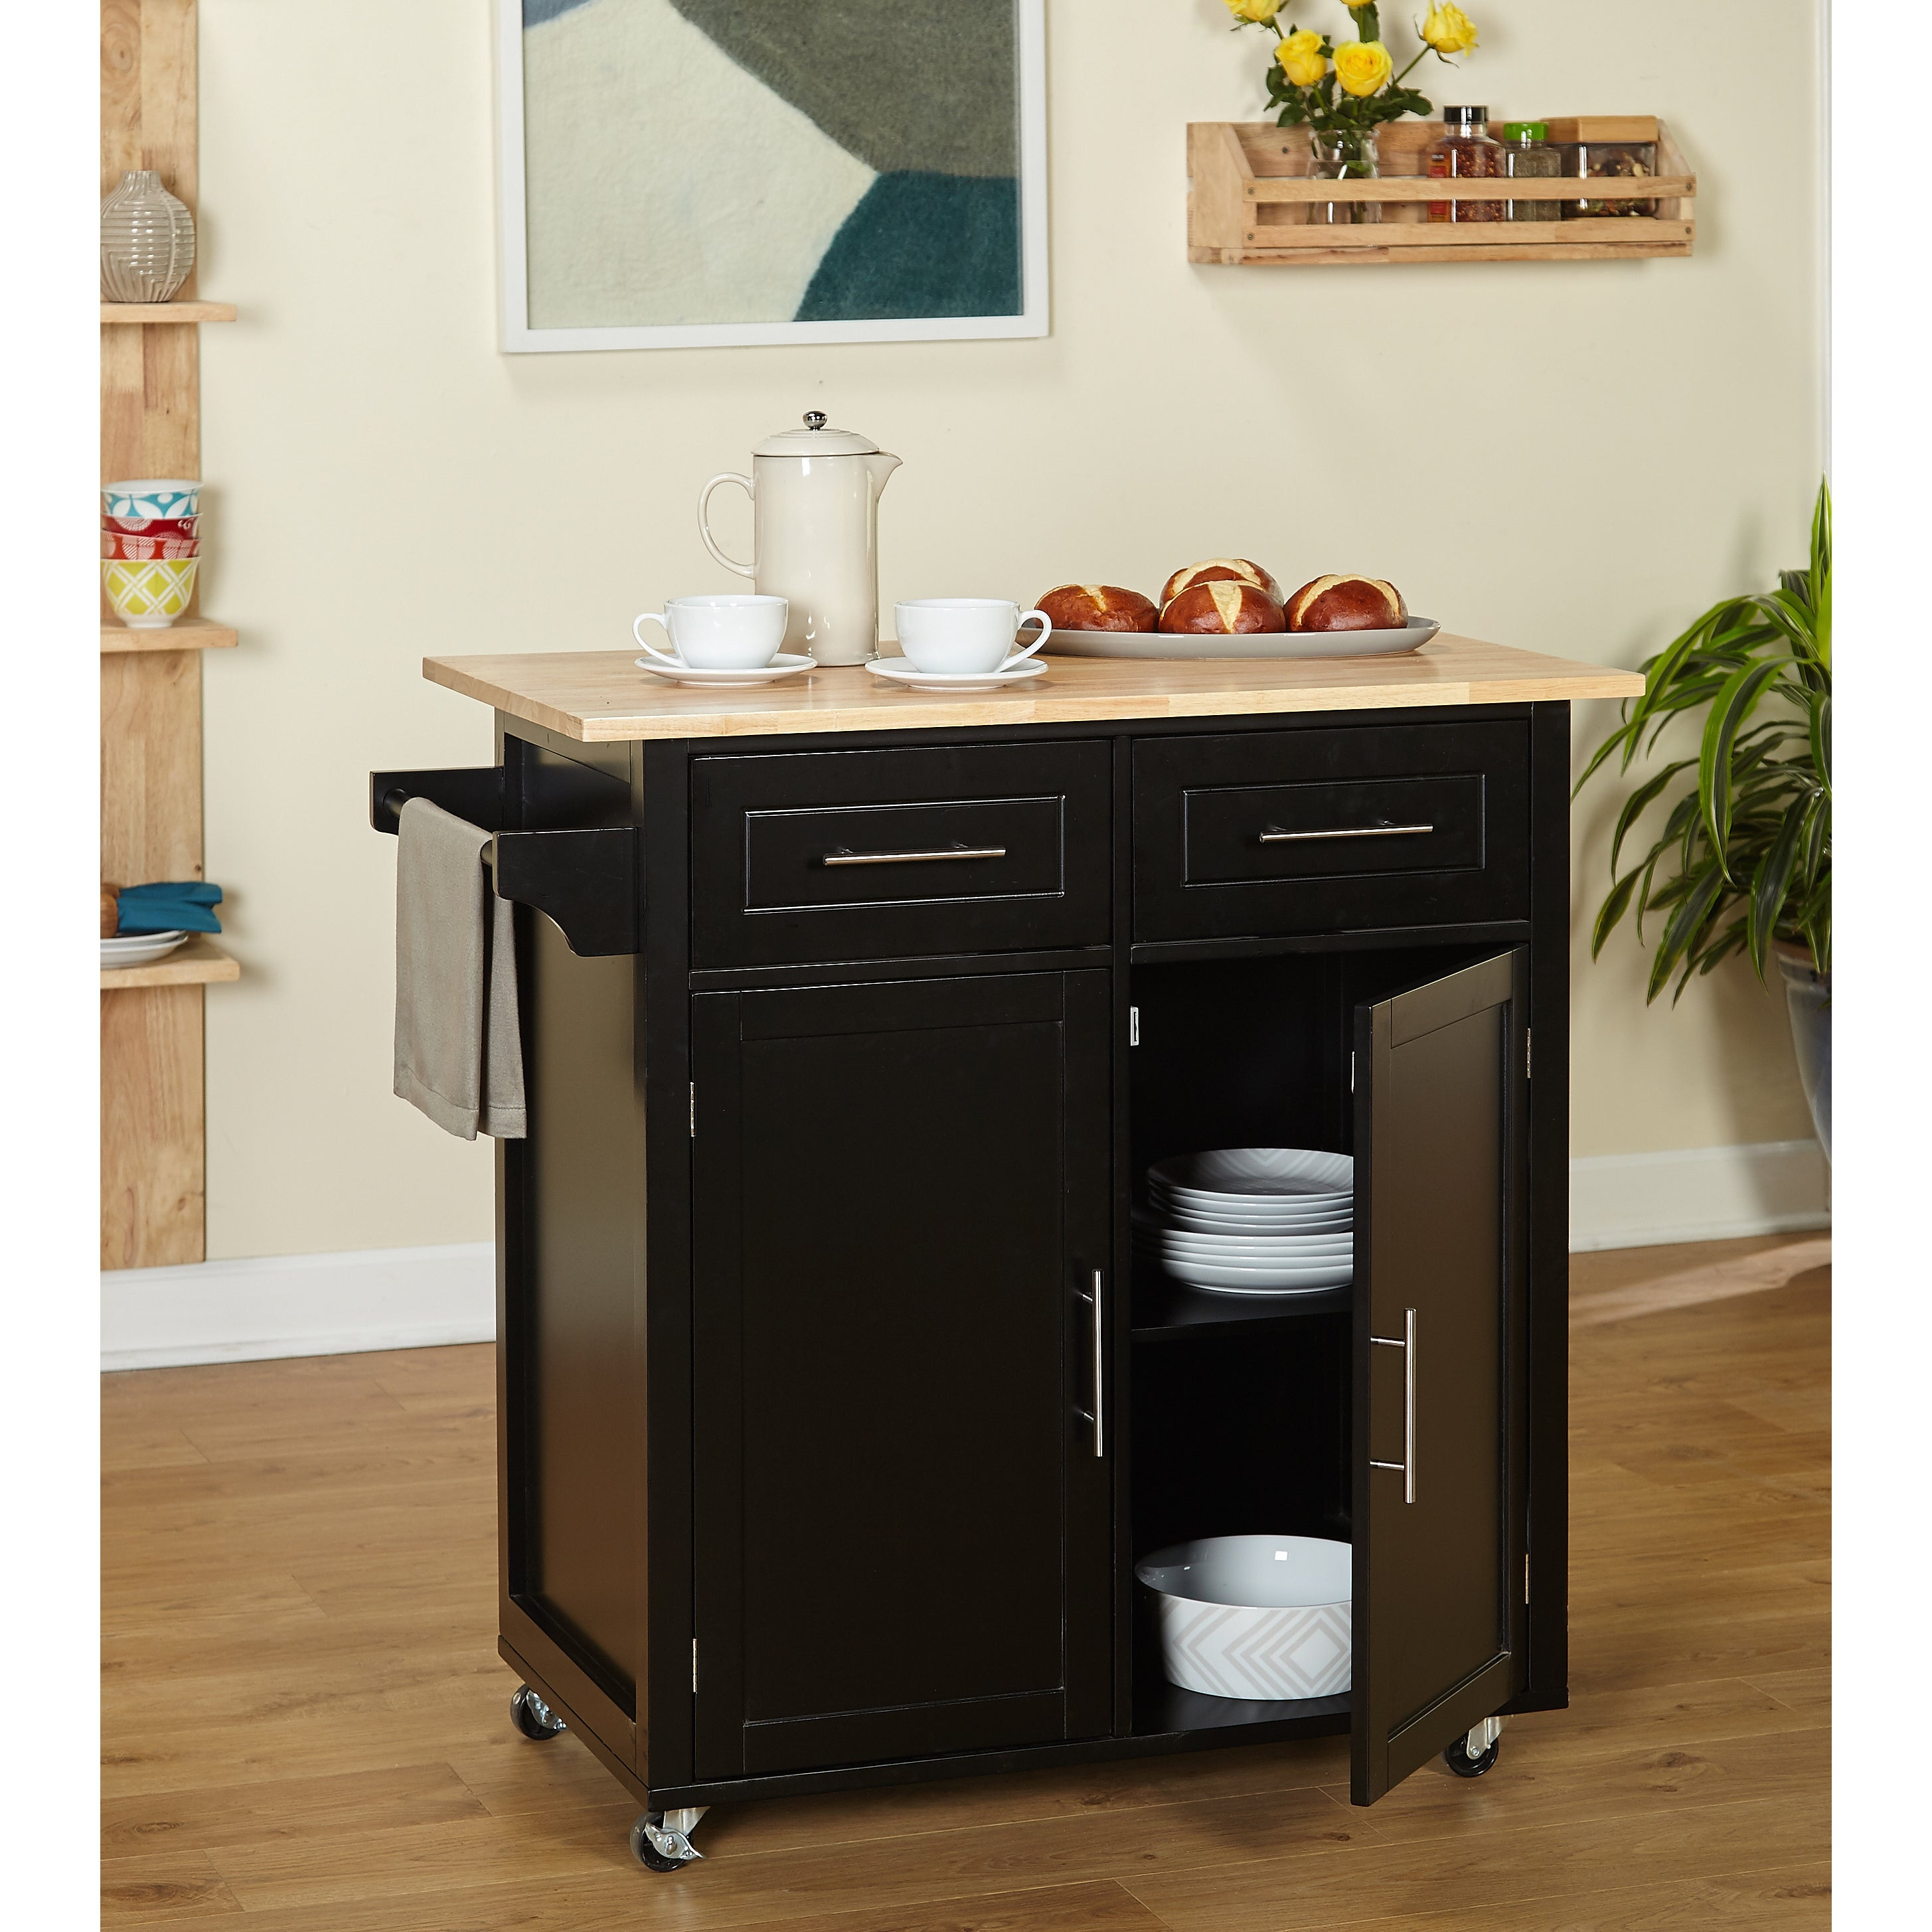 Shop simple living malibu modern rolling kitchen island on sale free shipping today overstock com 14043777